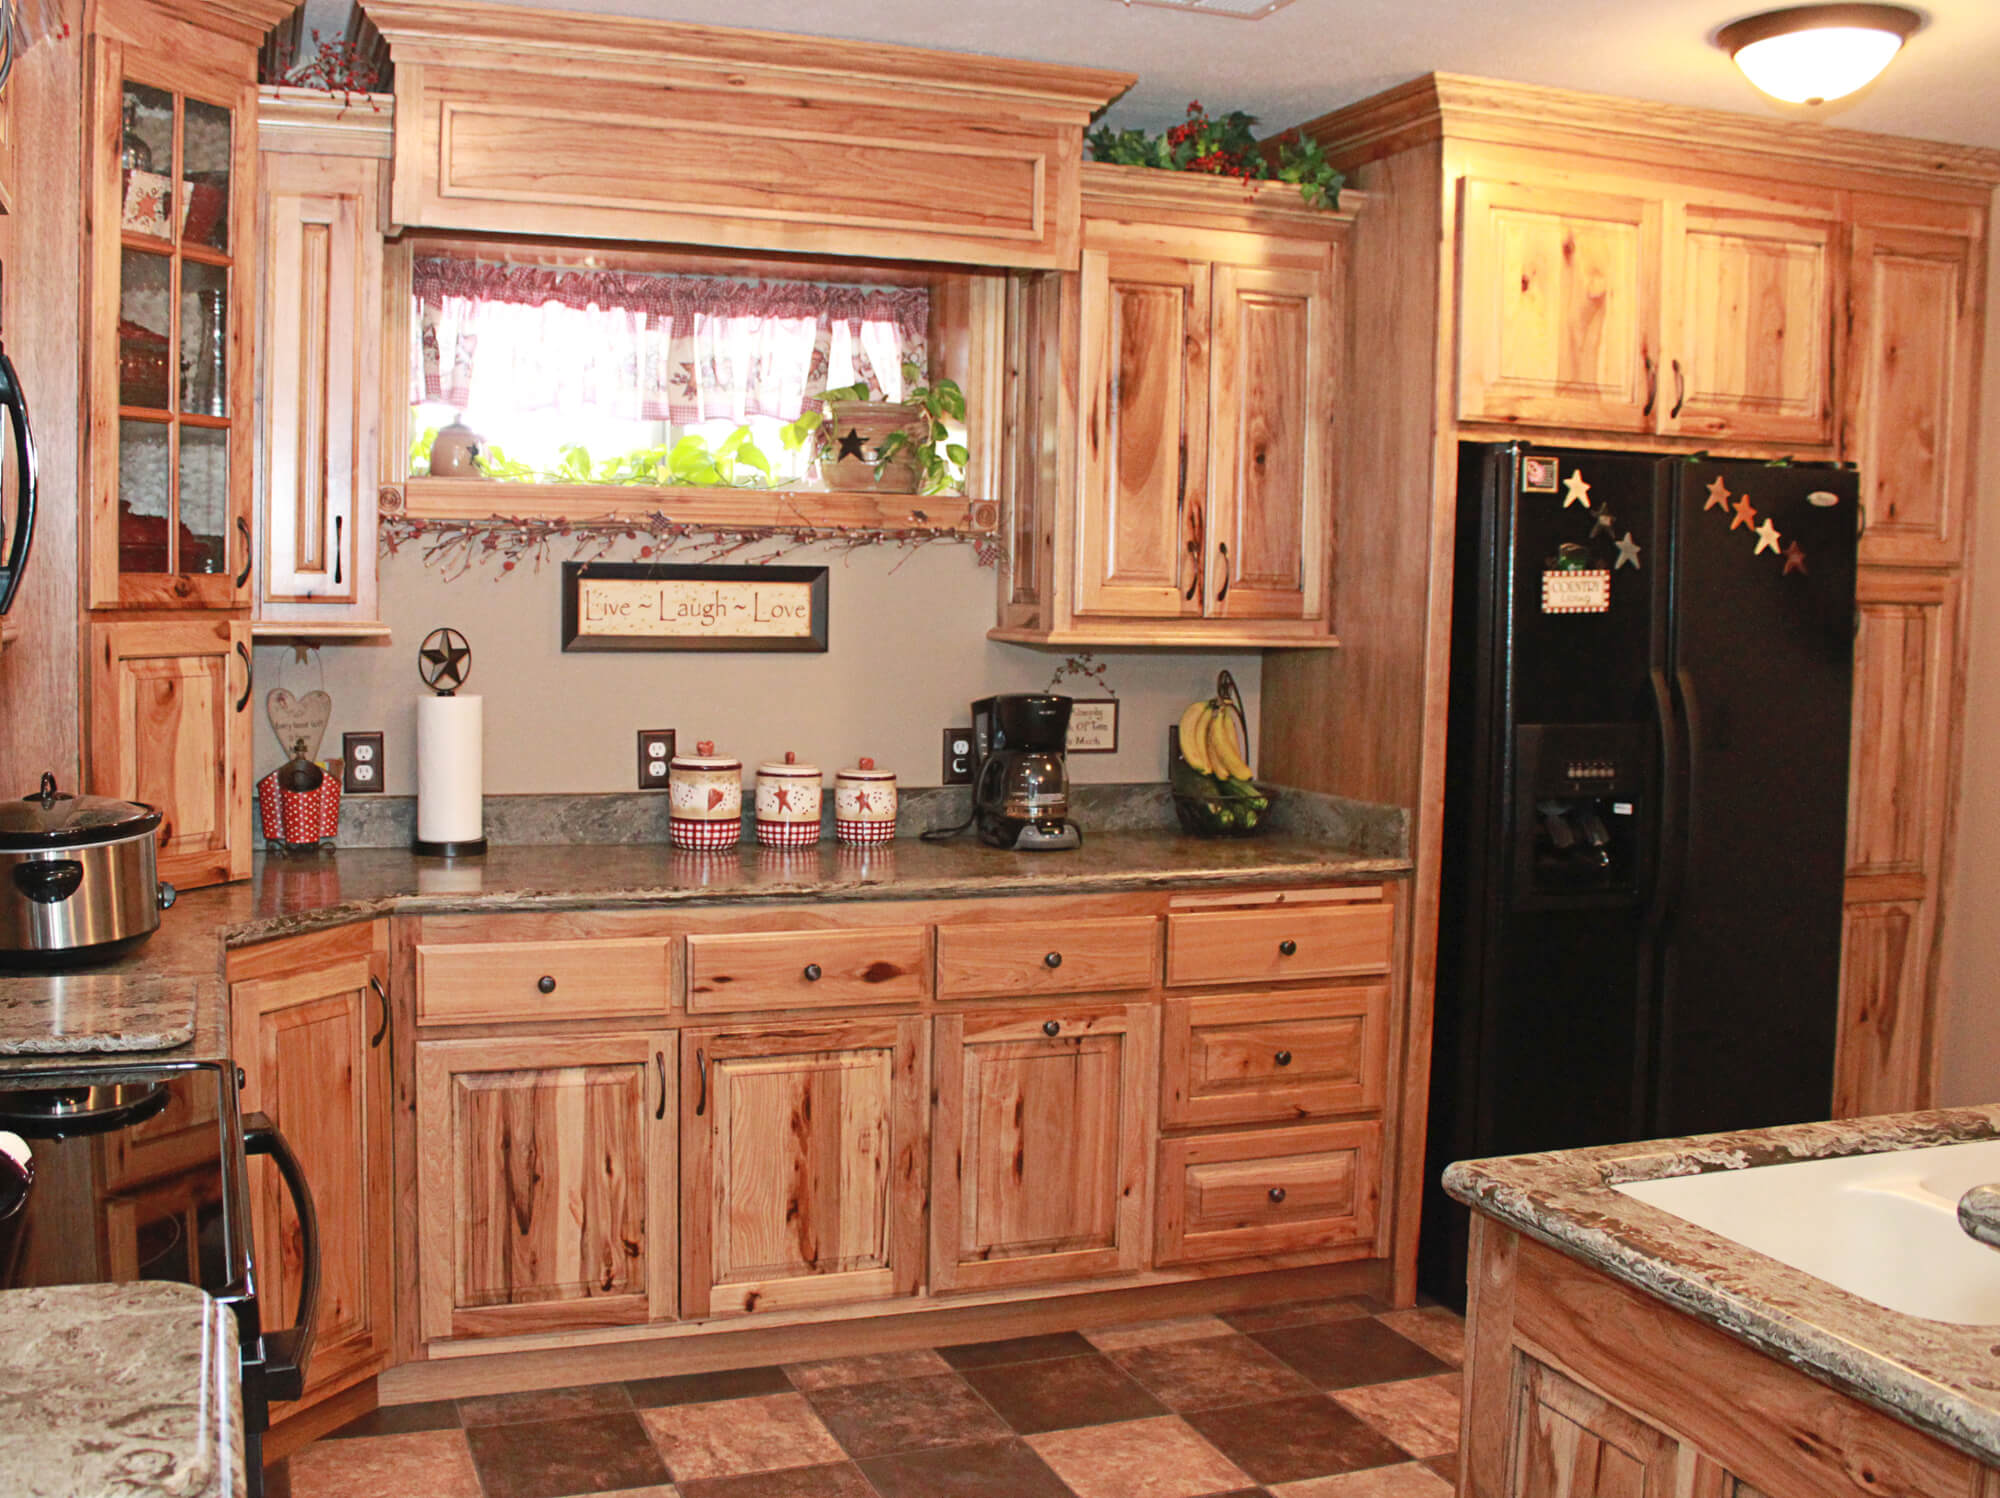 rustic hickory kitchen cabinets hickory kitchen cabinets Rustic Hickory Kitchen Cabinets